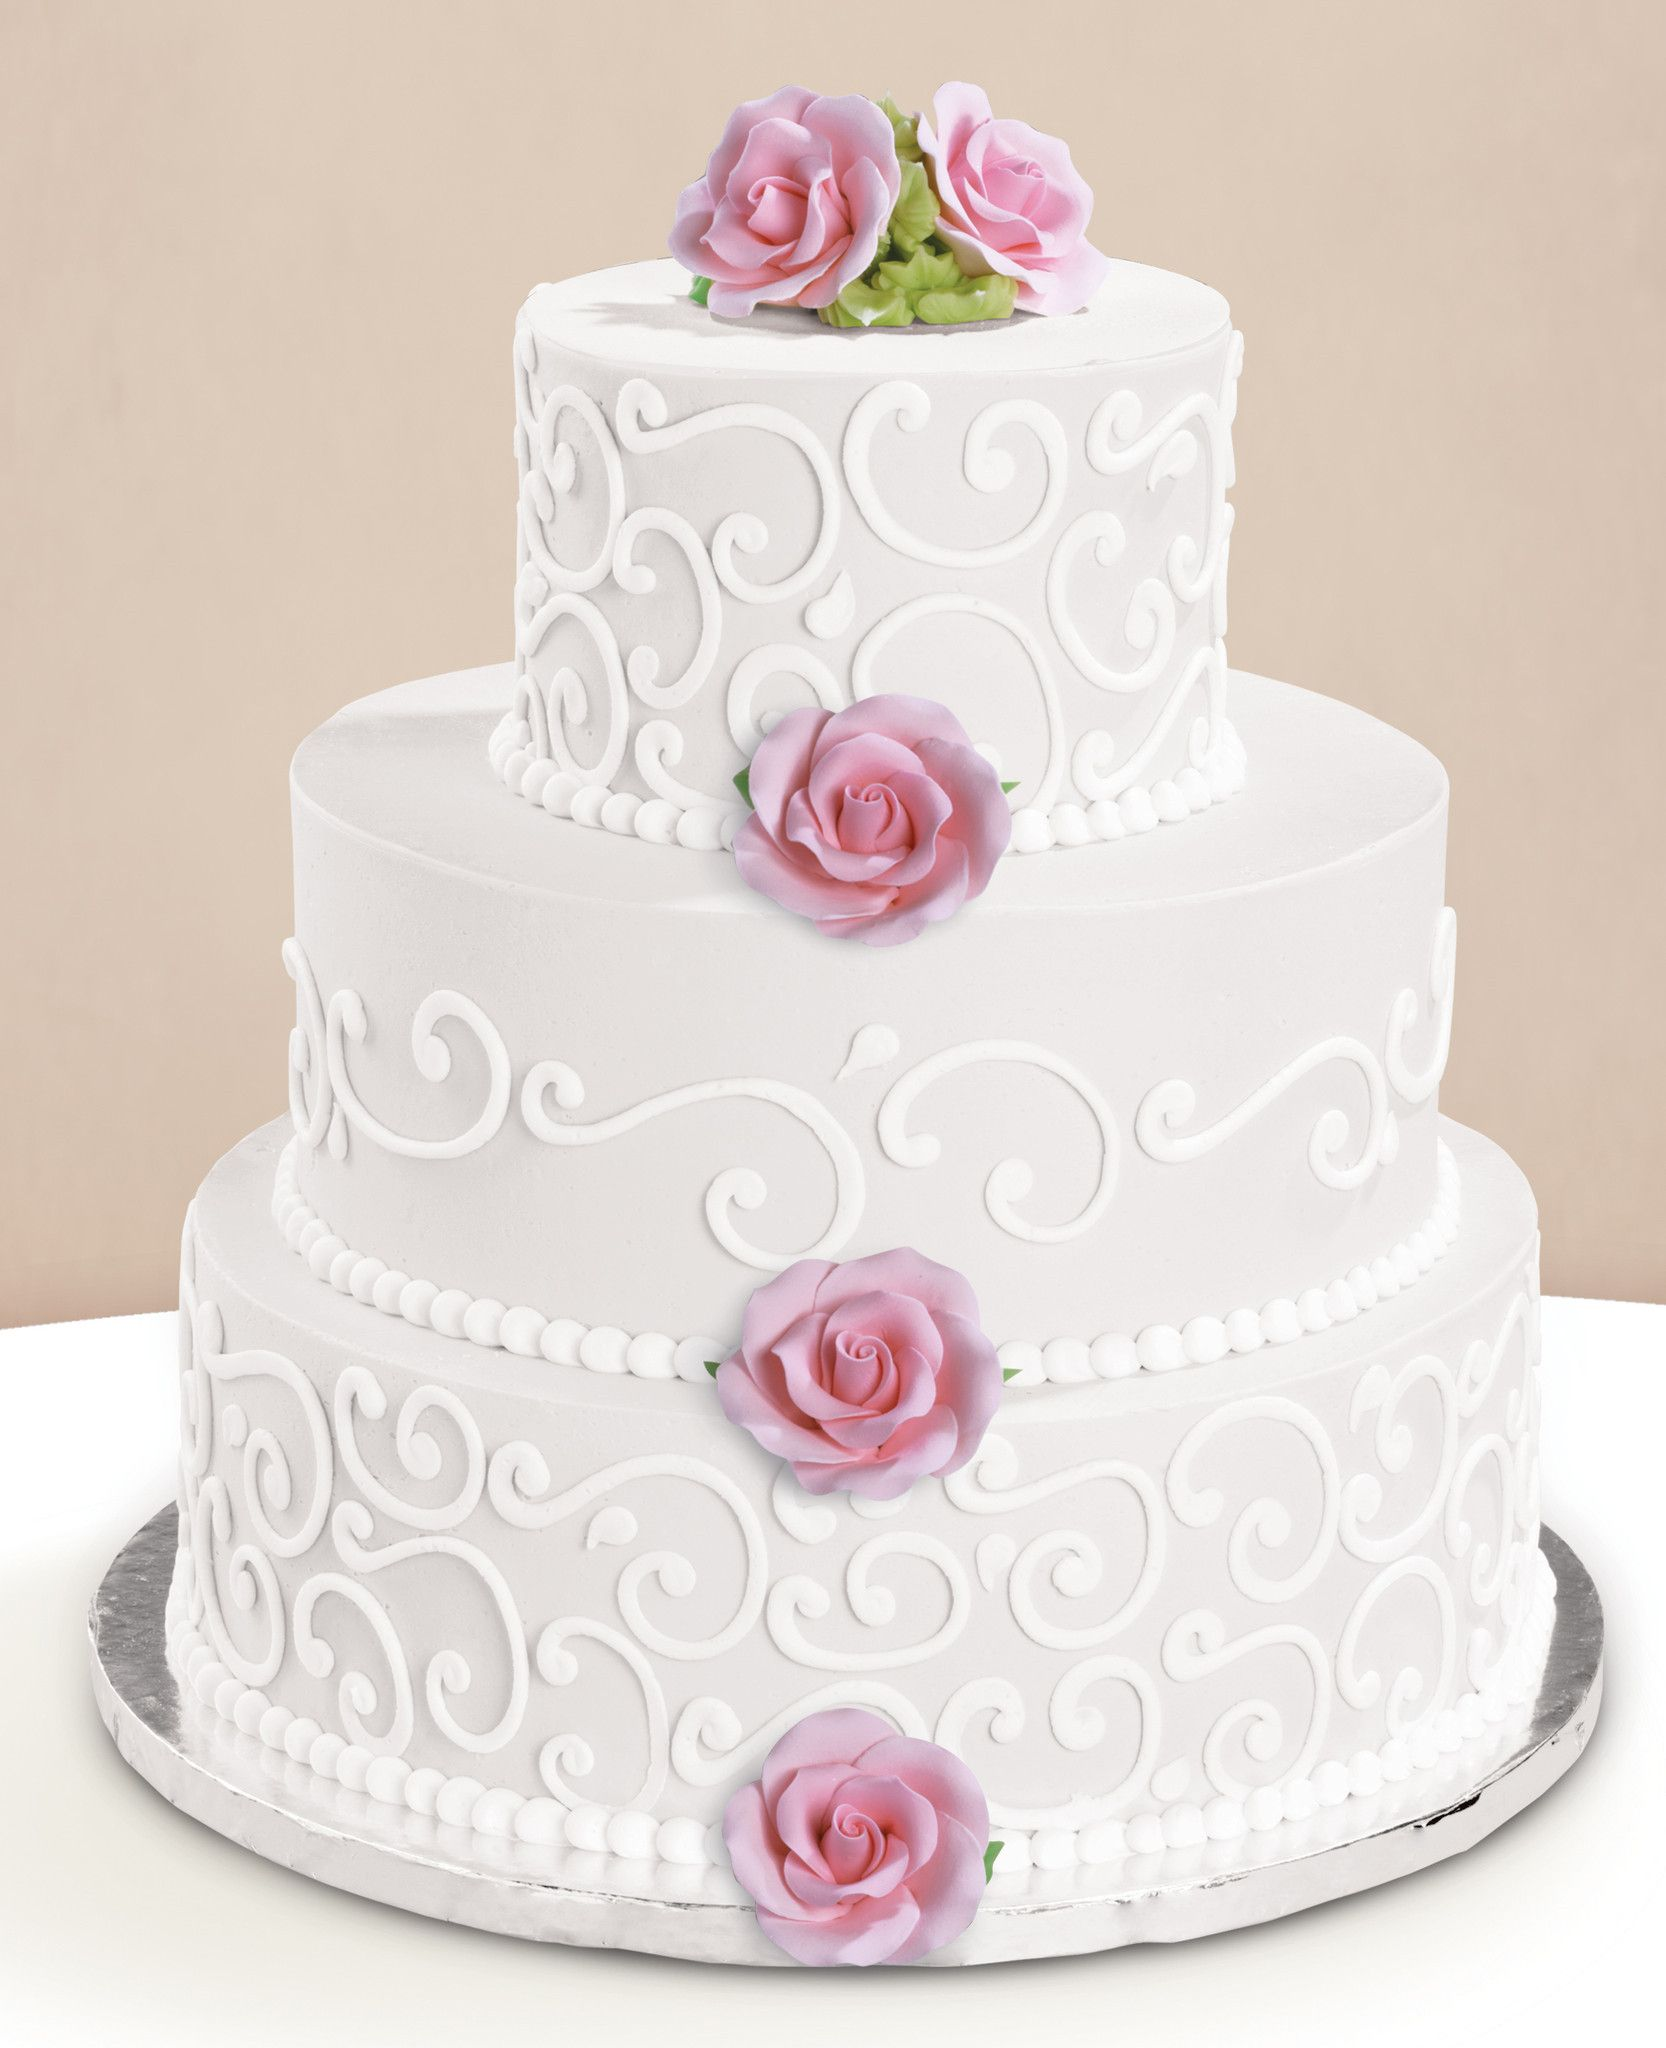 Pictures Of Walmart Wedding Cakes : pictures, walmart, wedding, cakes, Hartford, Courant, Wedding, Prices,, Walmart, Cake,, Pictures